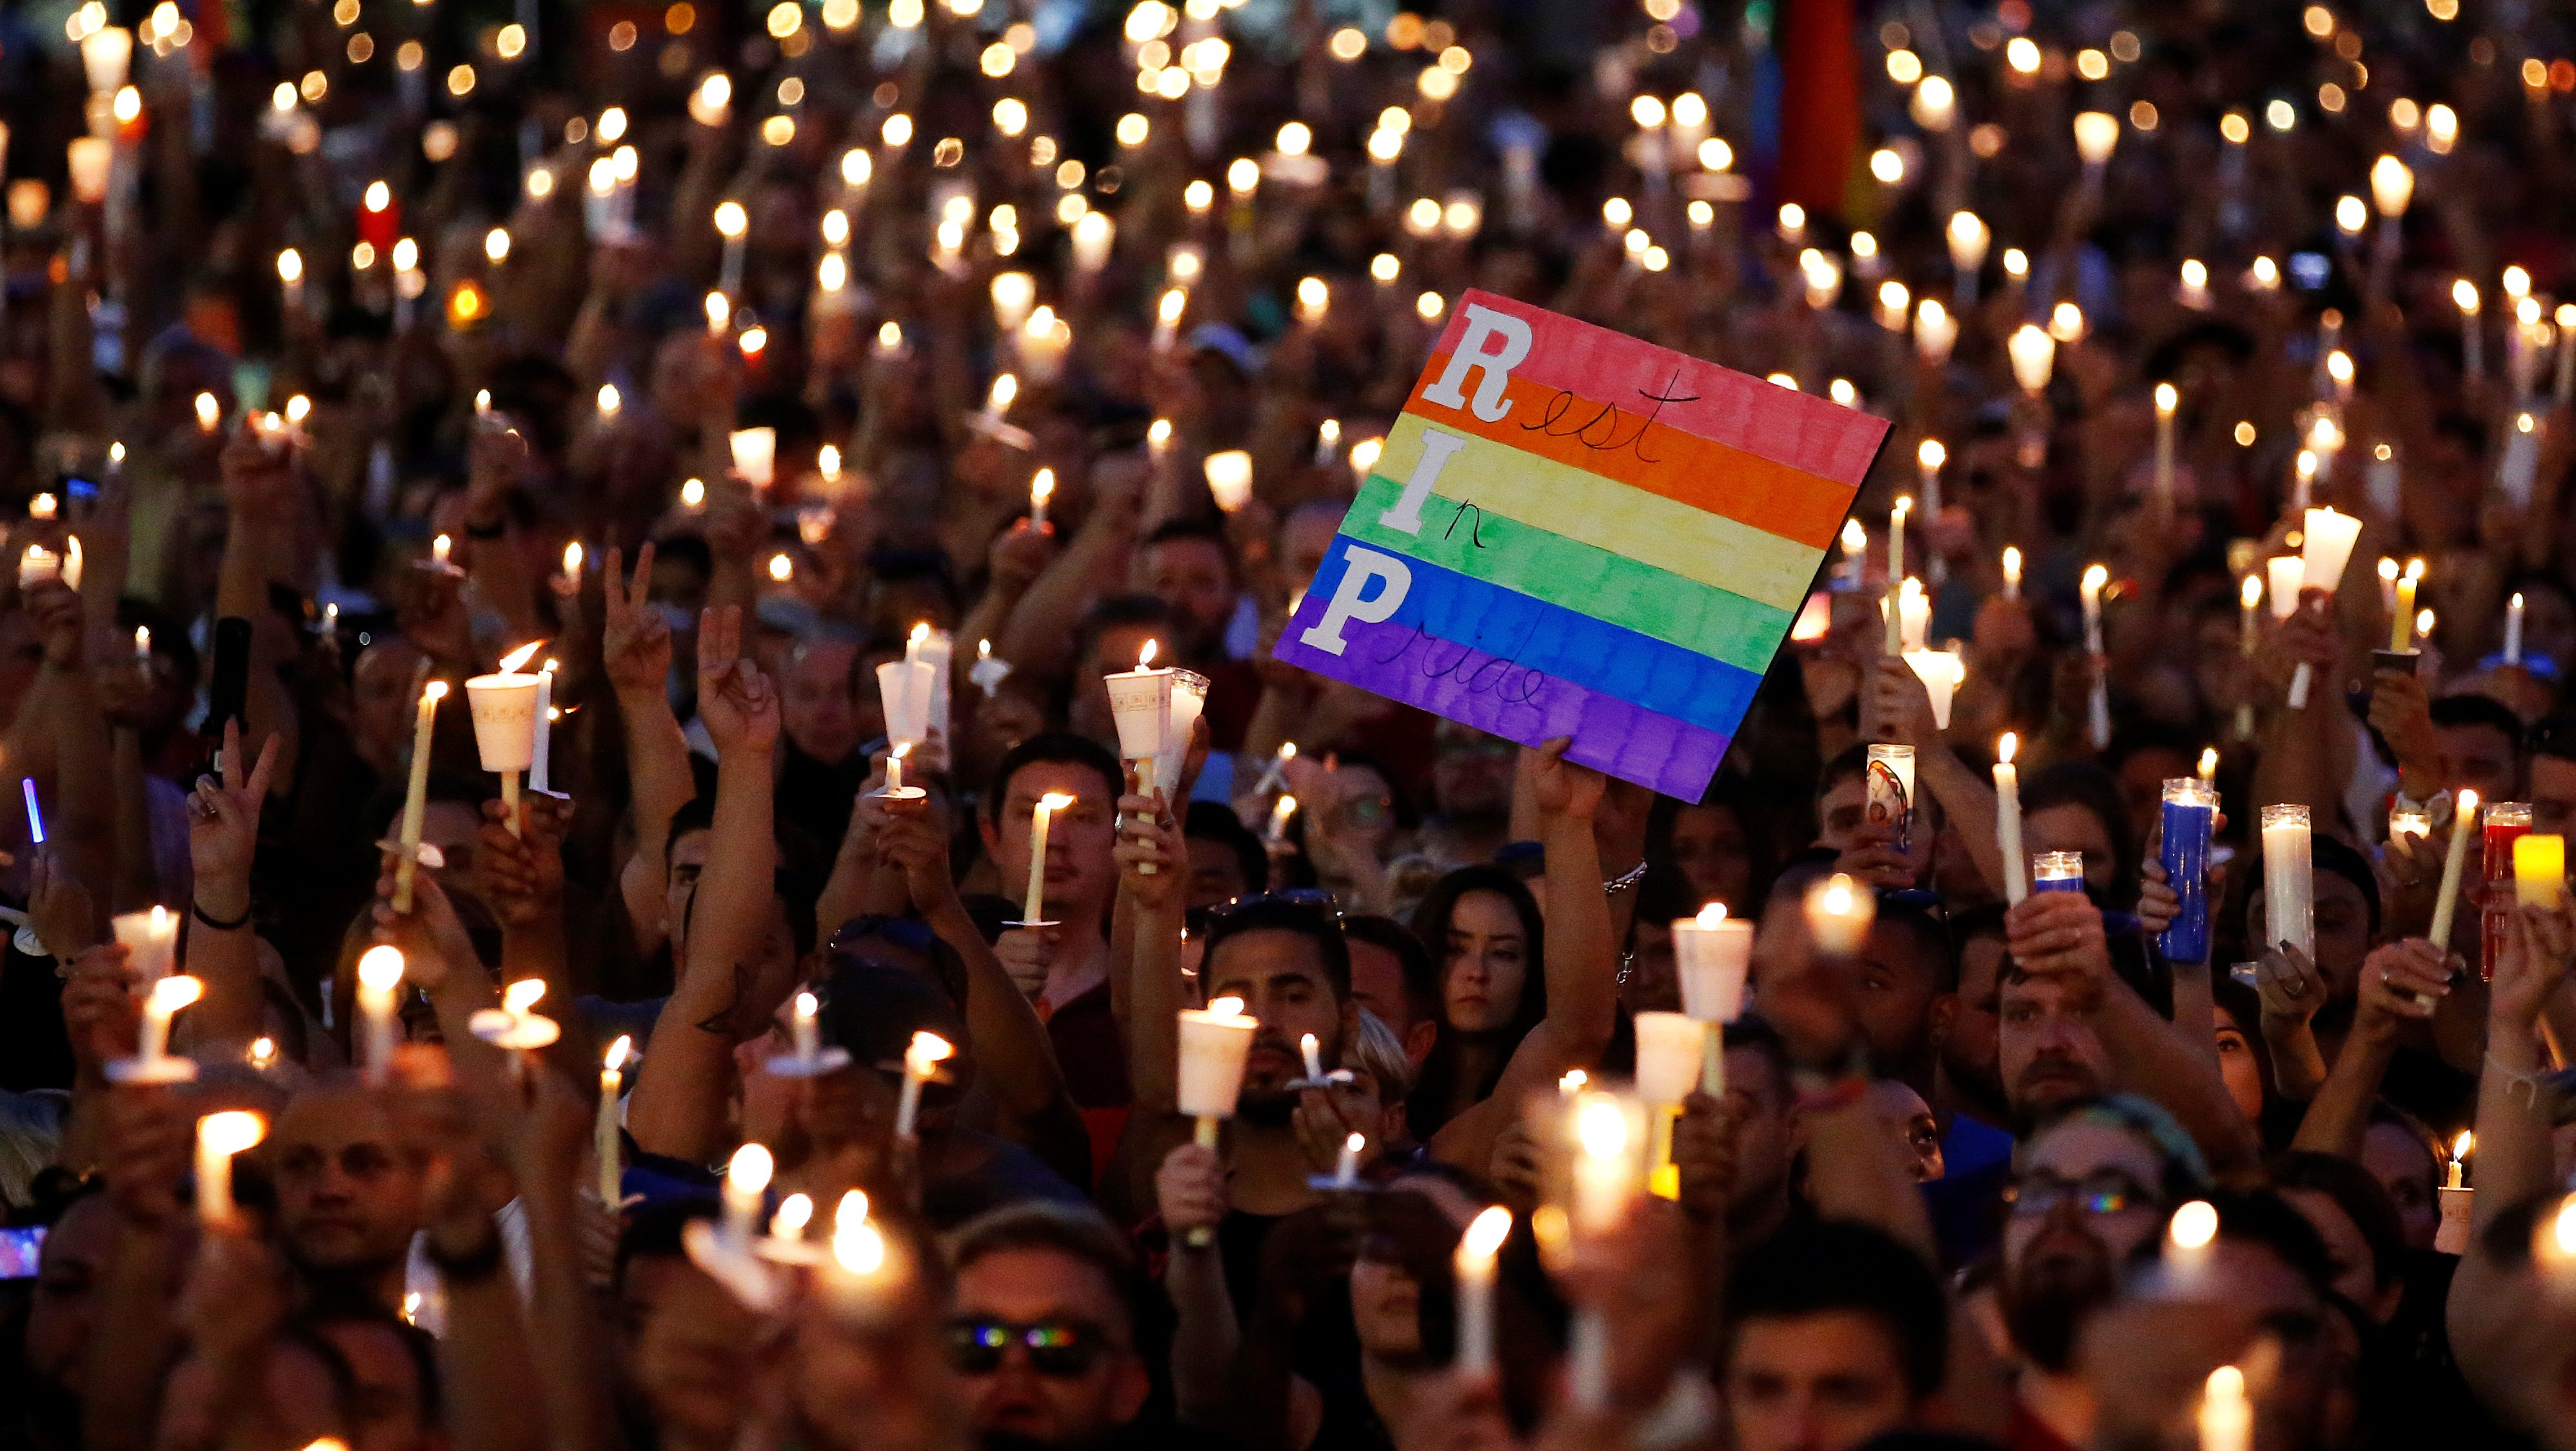 People take part in a candlelight memorial service the day after a mass shooting at the Pulse gay nightclub in Orlando, Florida, U.S. June 13, 2016. REUTERS/Carlo Allegri     TPX IMAGES OF THE DAY      - RTX2G2MK